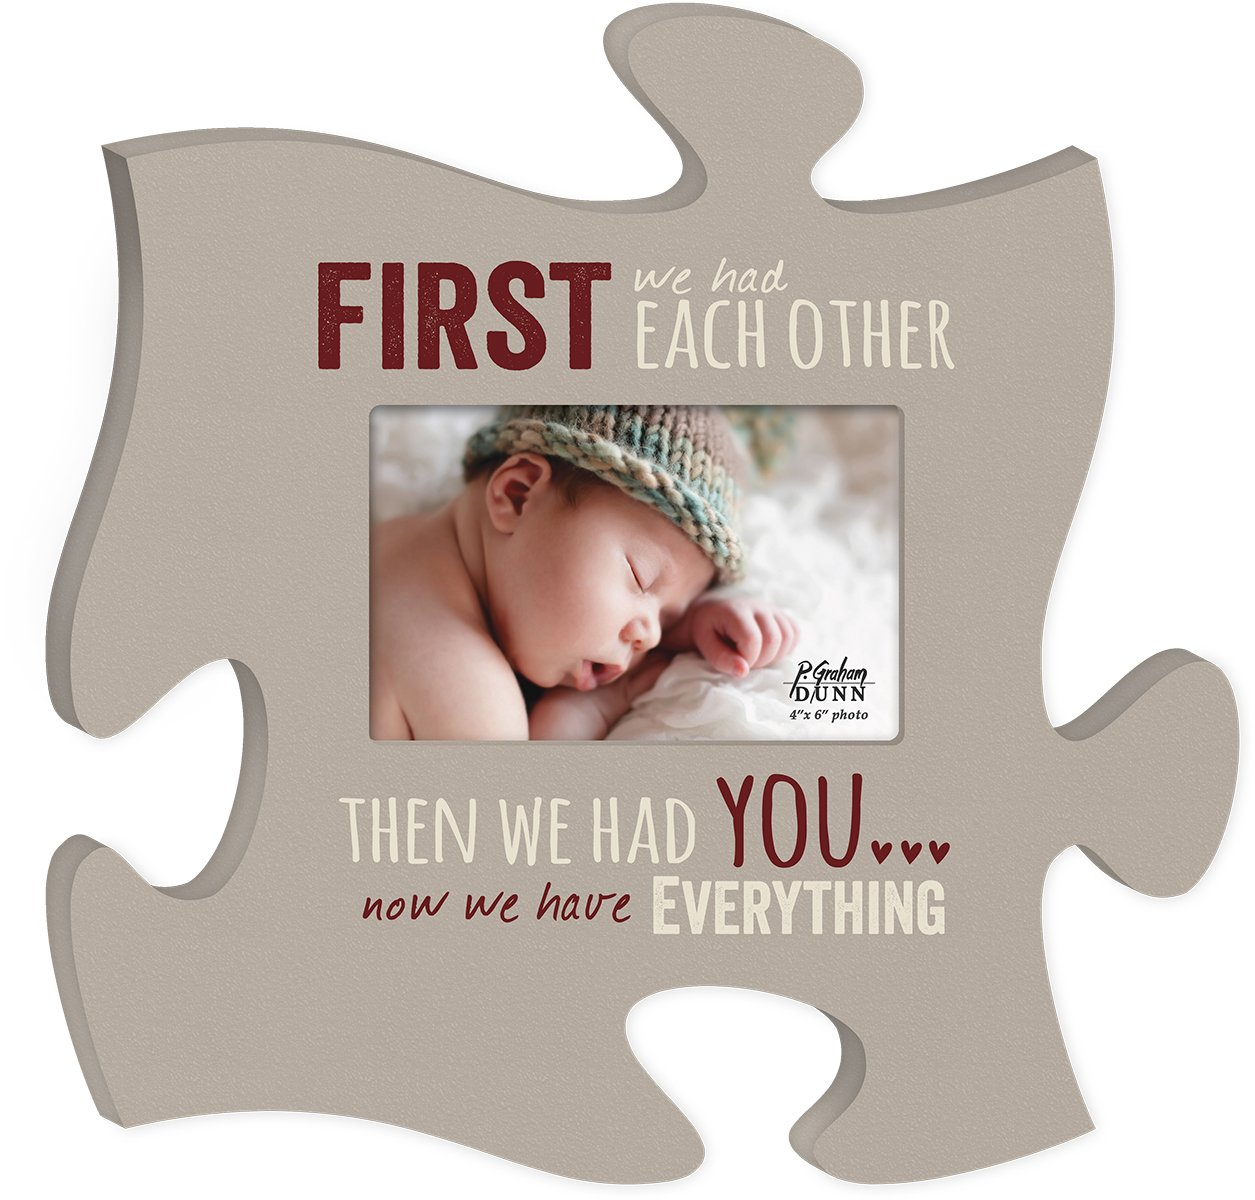 Now We Have Everything 4x6 Photo Frame Inspirational Puzzle Piece Wall Art Plaque P. Graham Dunn PUF0160